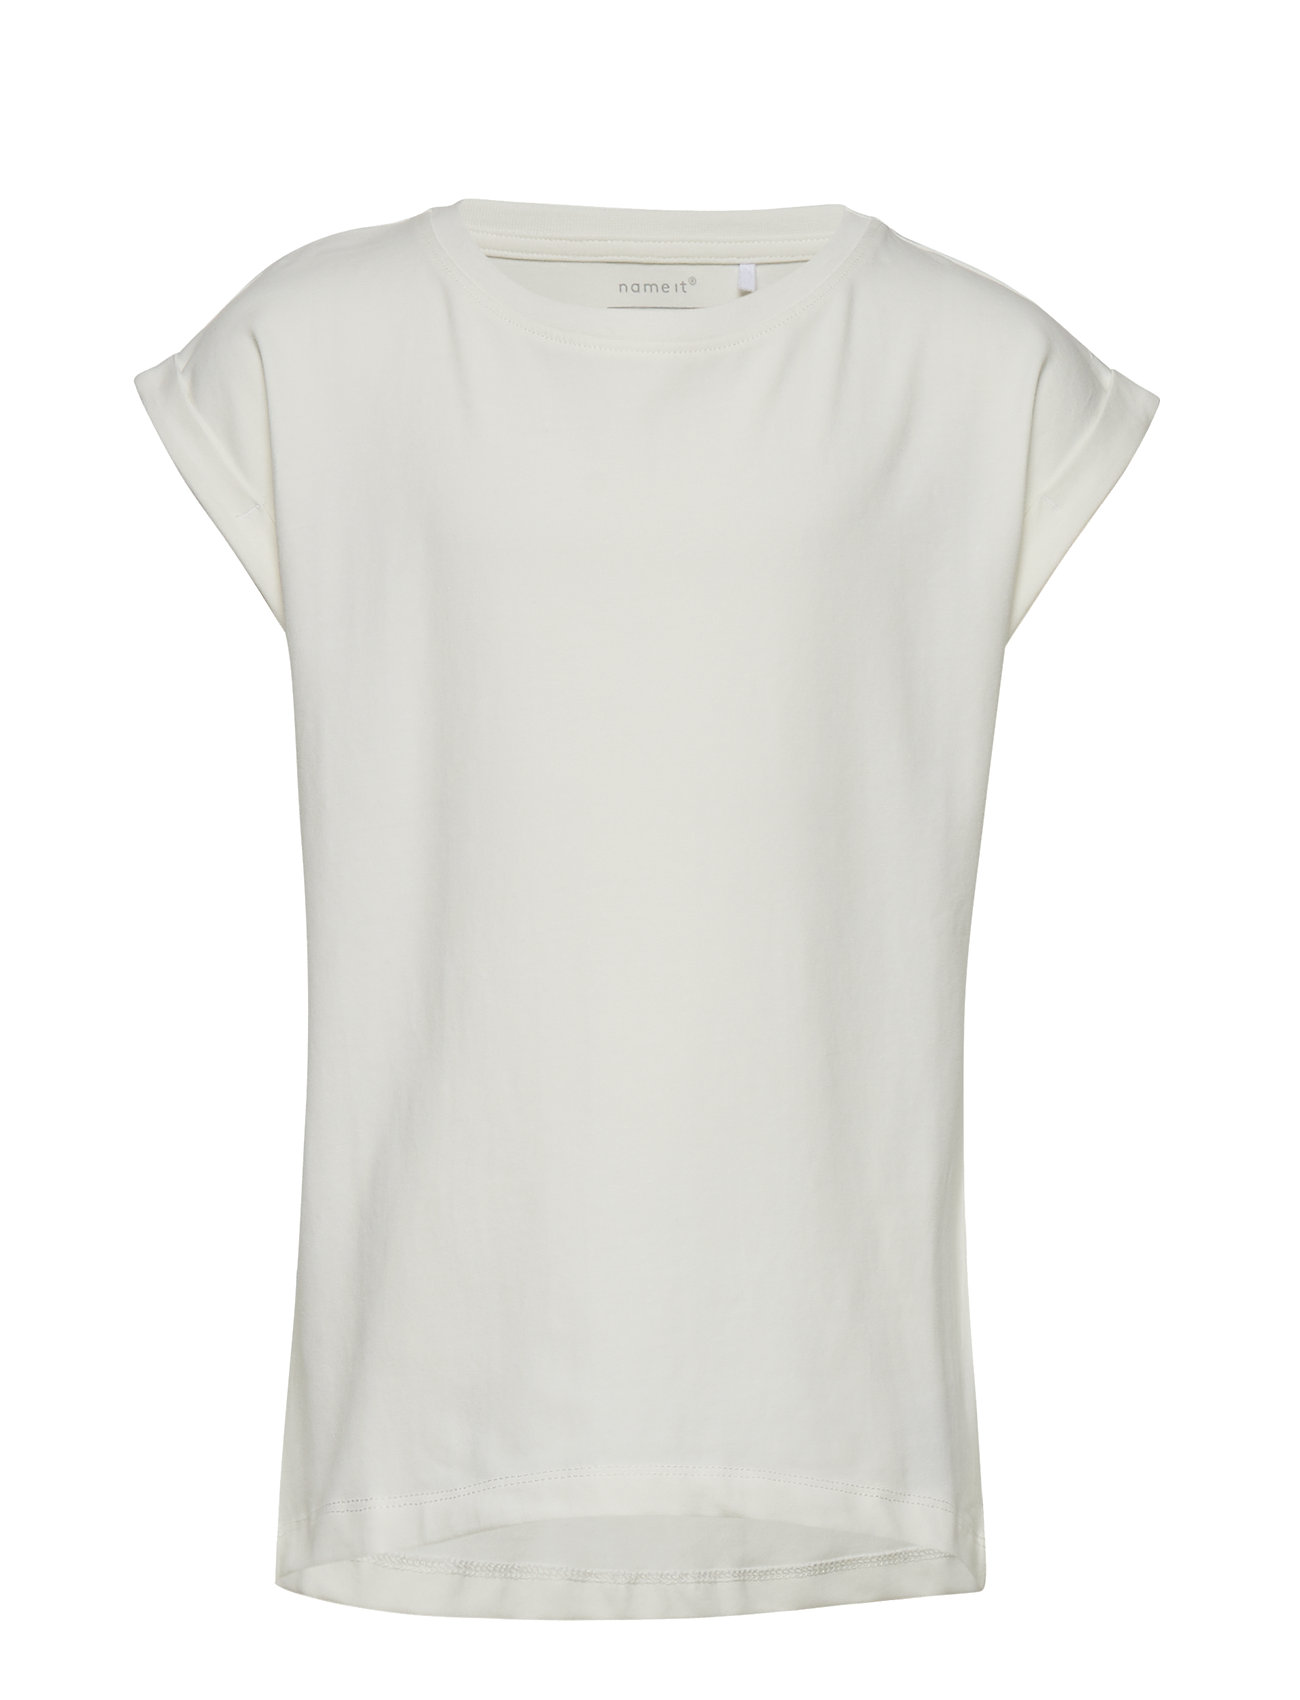 Image of Nkfvilda Ss Top Noos T-shirt Hvid NAME IT (2935833659)